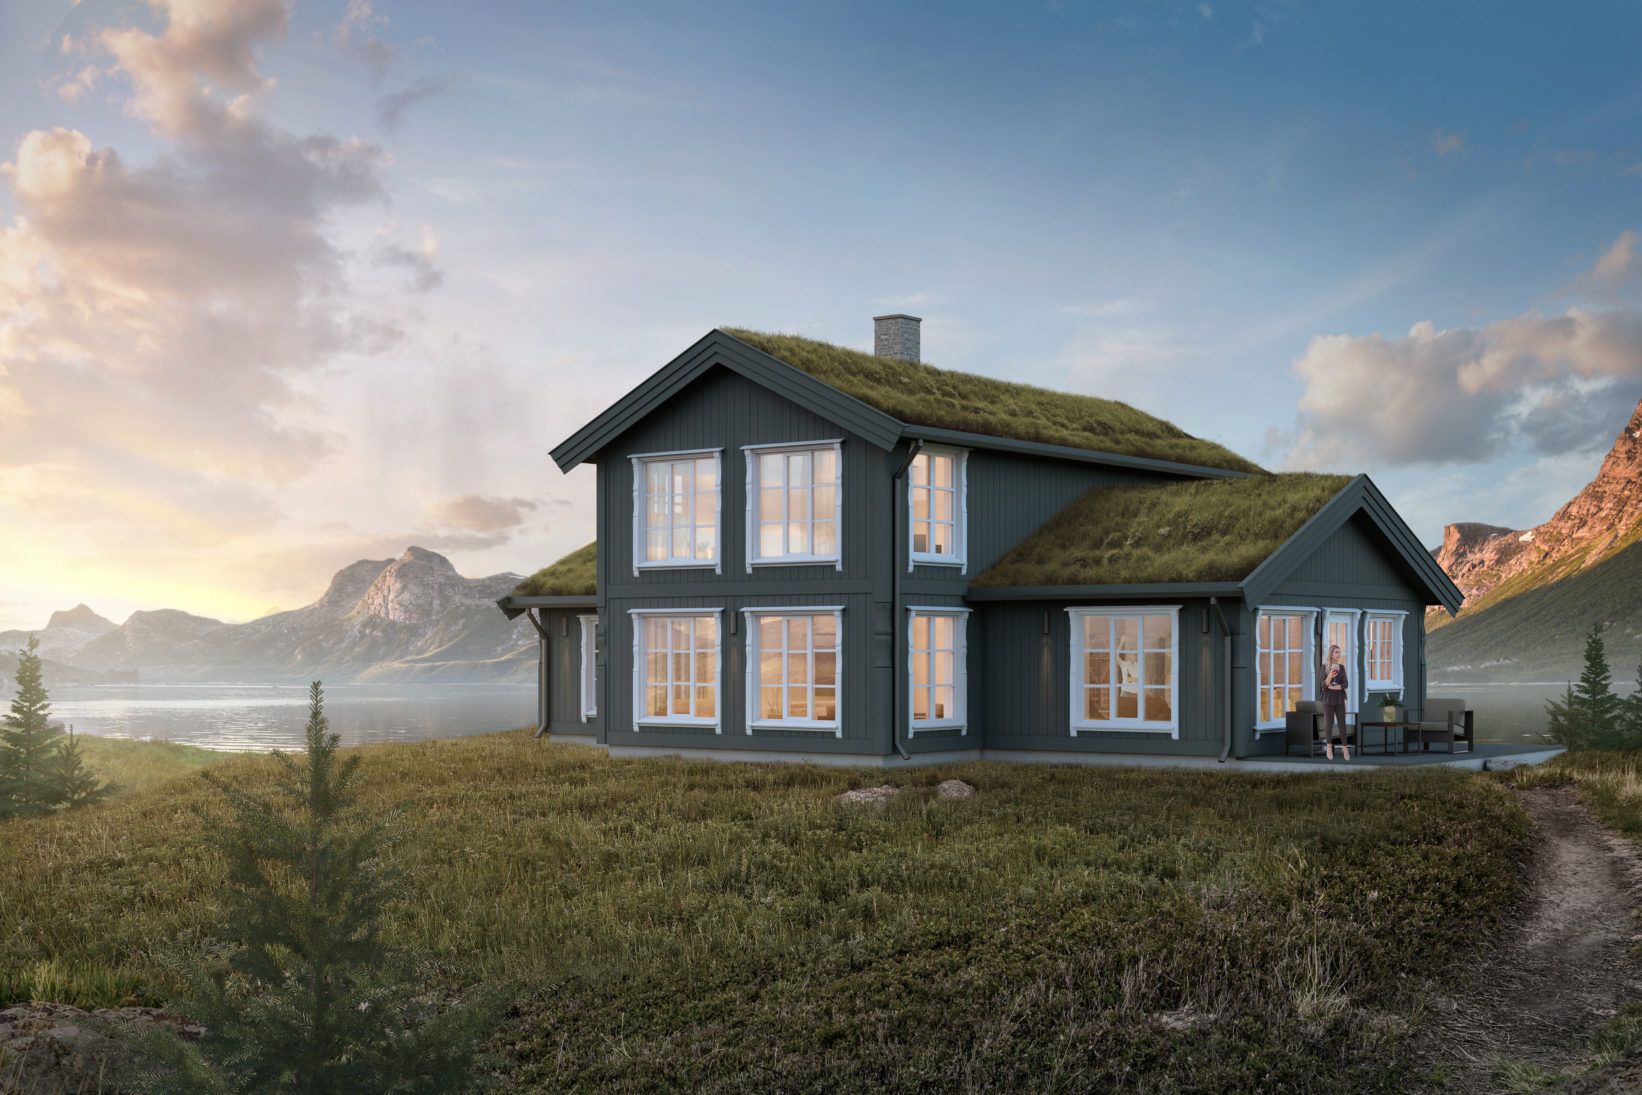 3D-visualisering for Hus 1 Norge